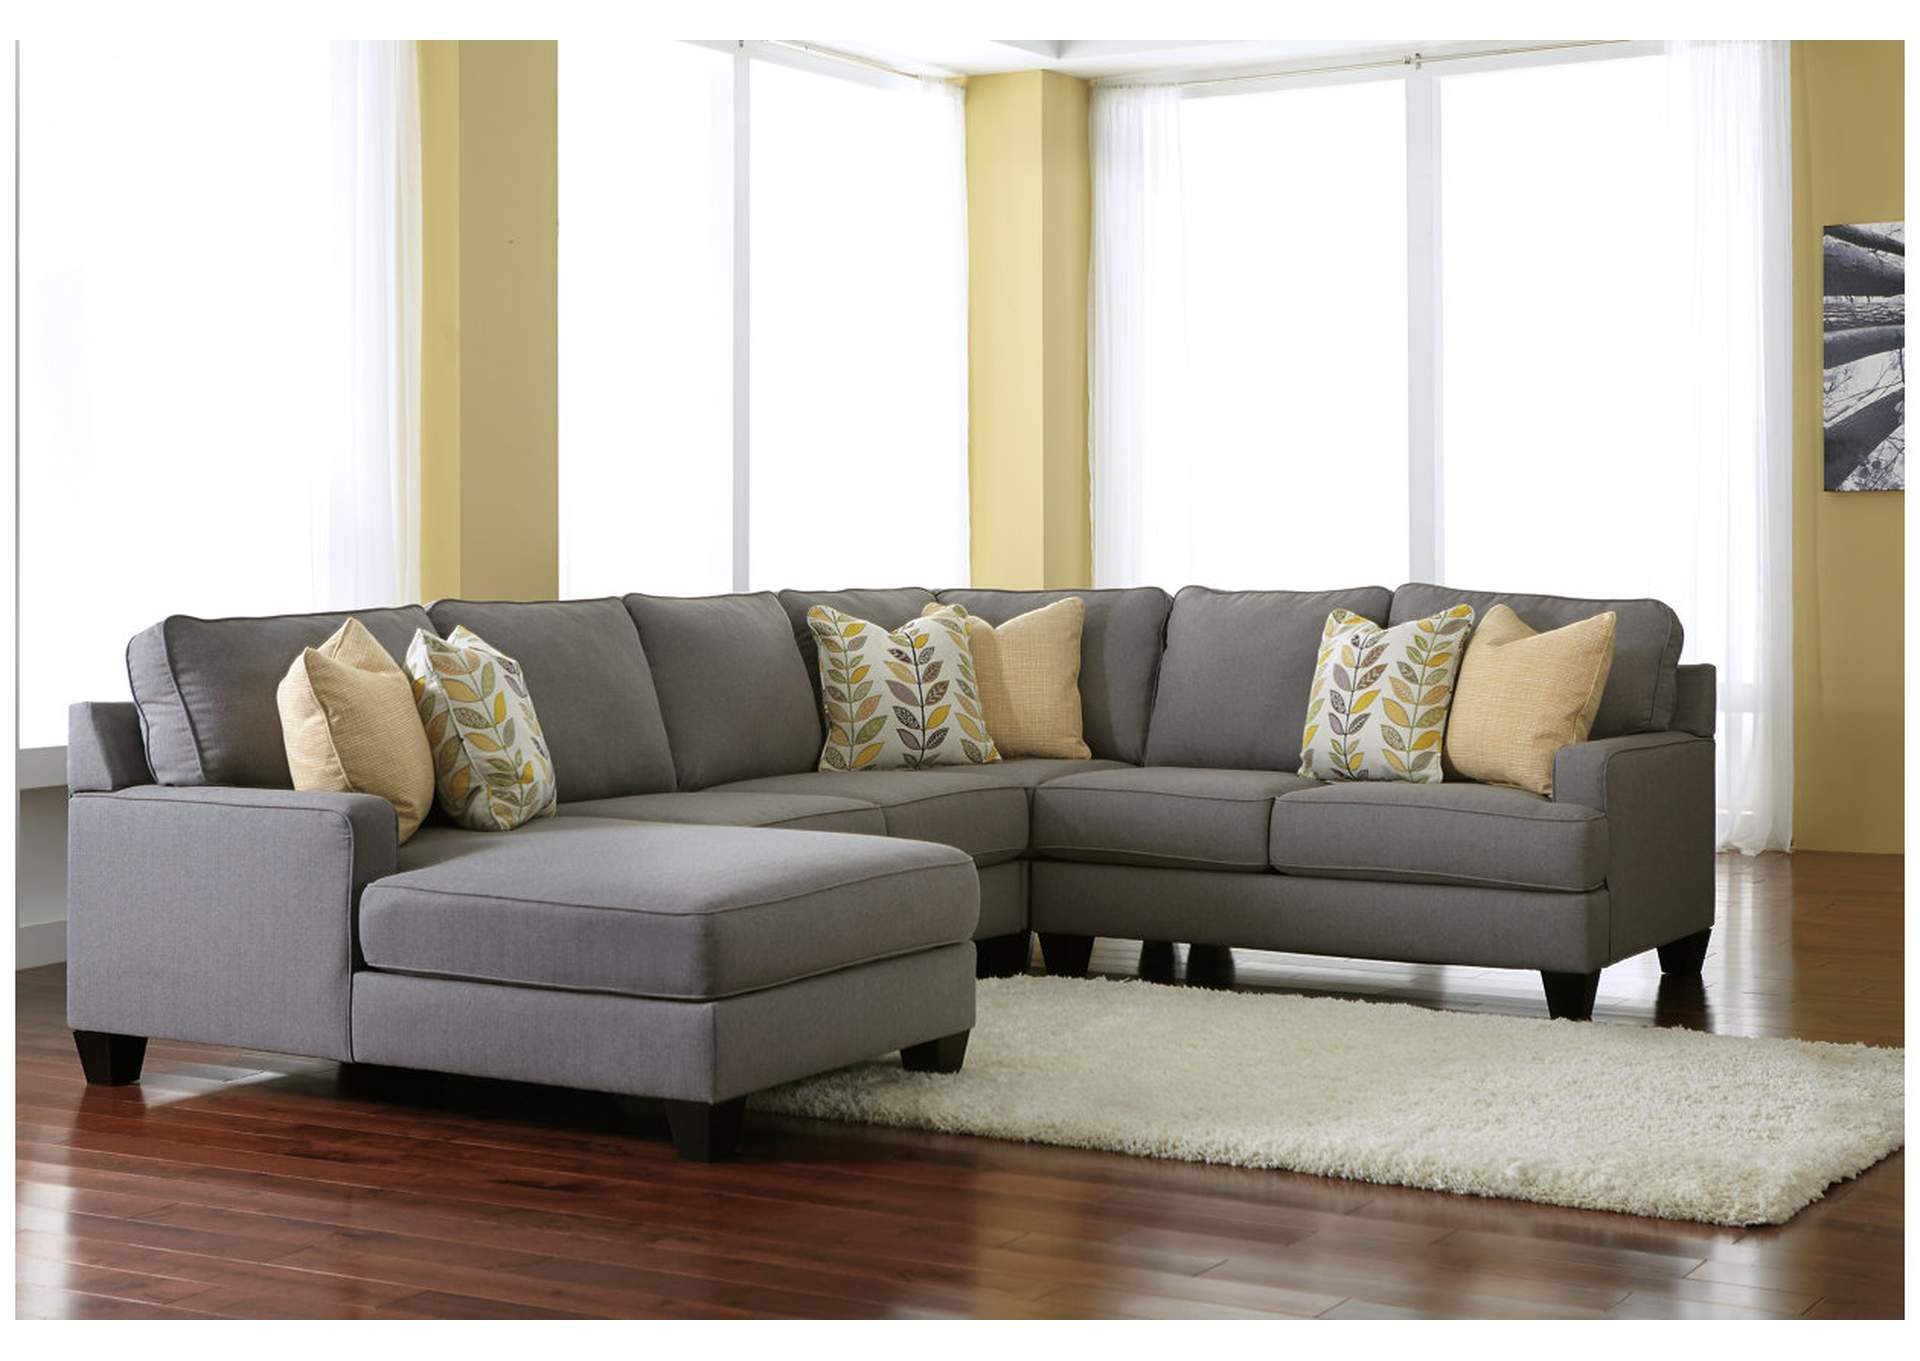 Chamberly Alloy LAF Chaise Sectional,Signature Design By Ashley